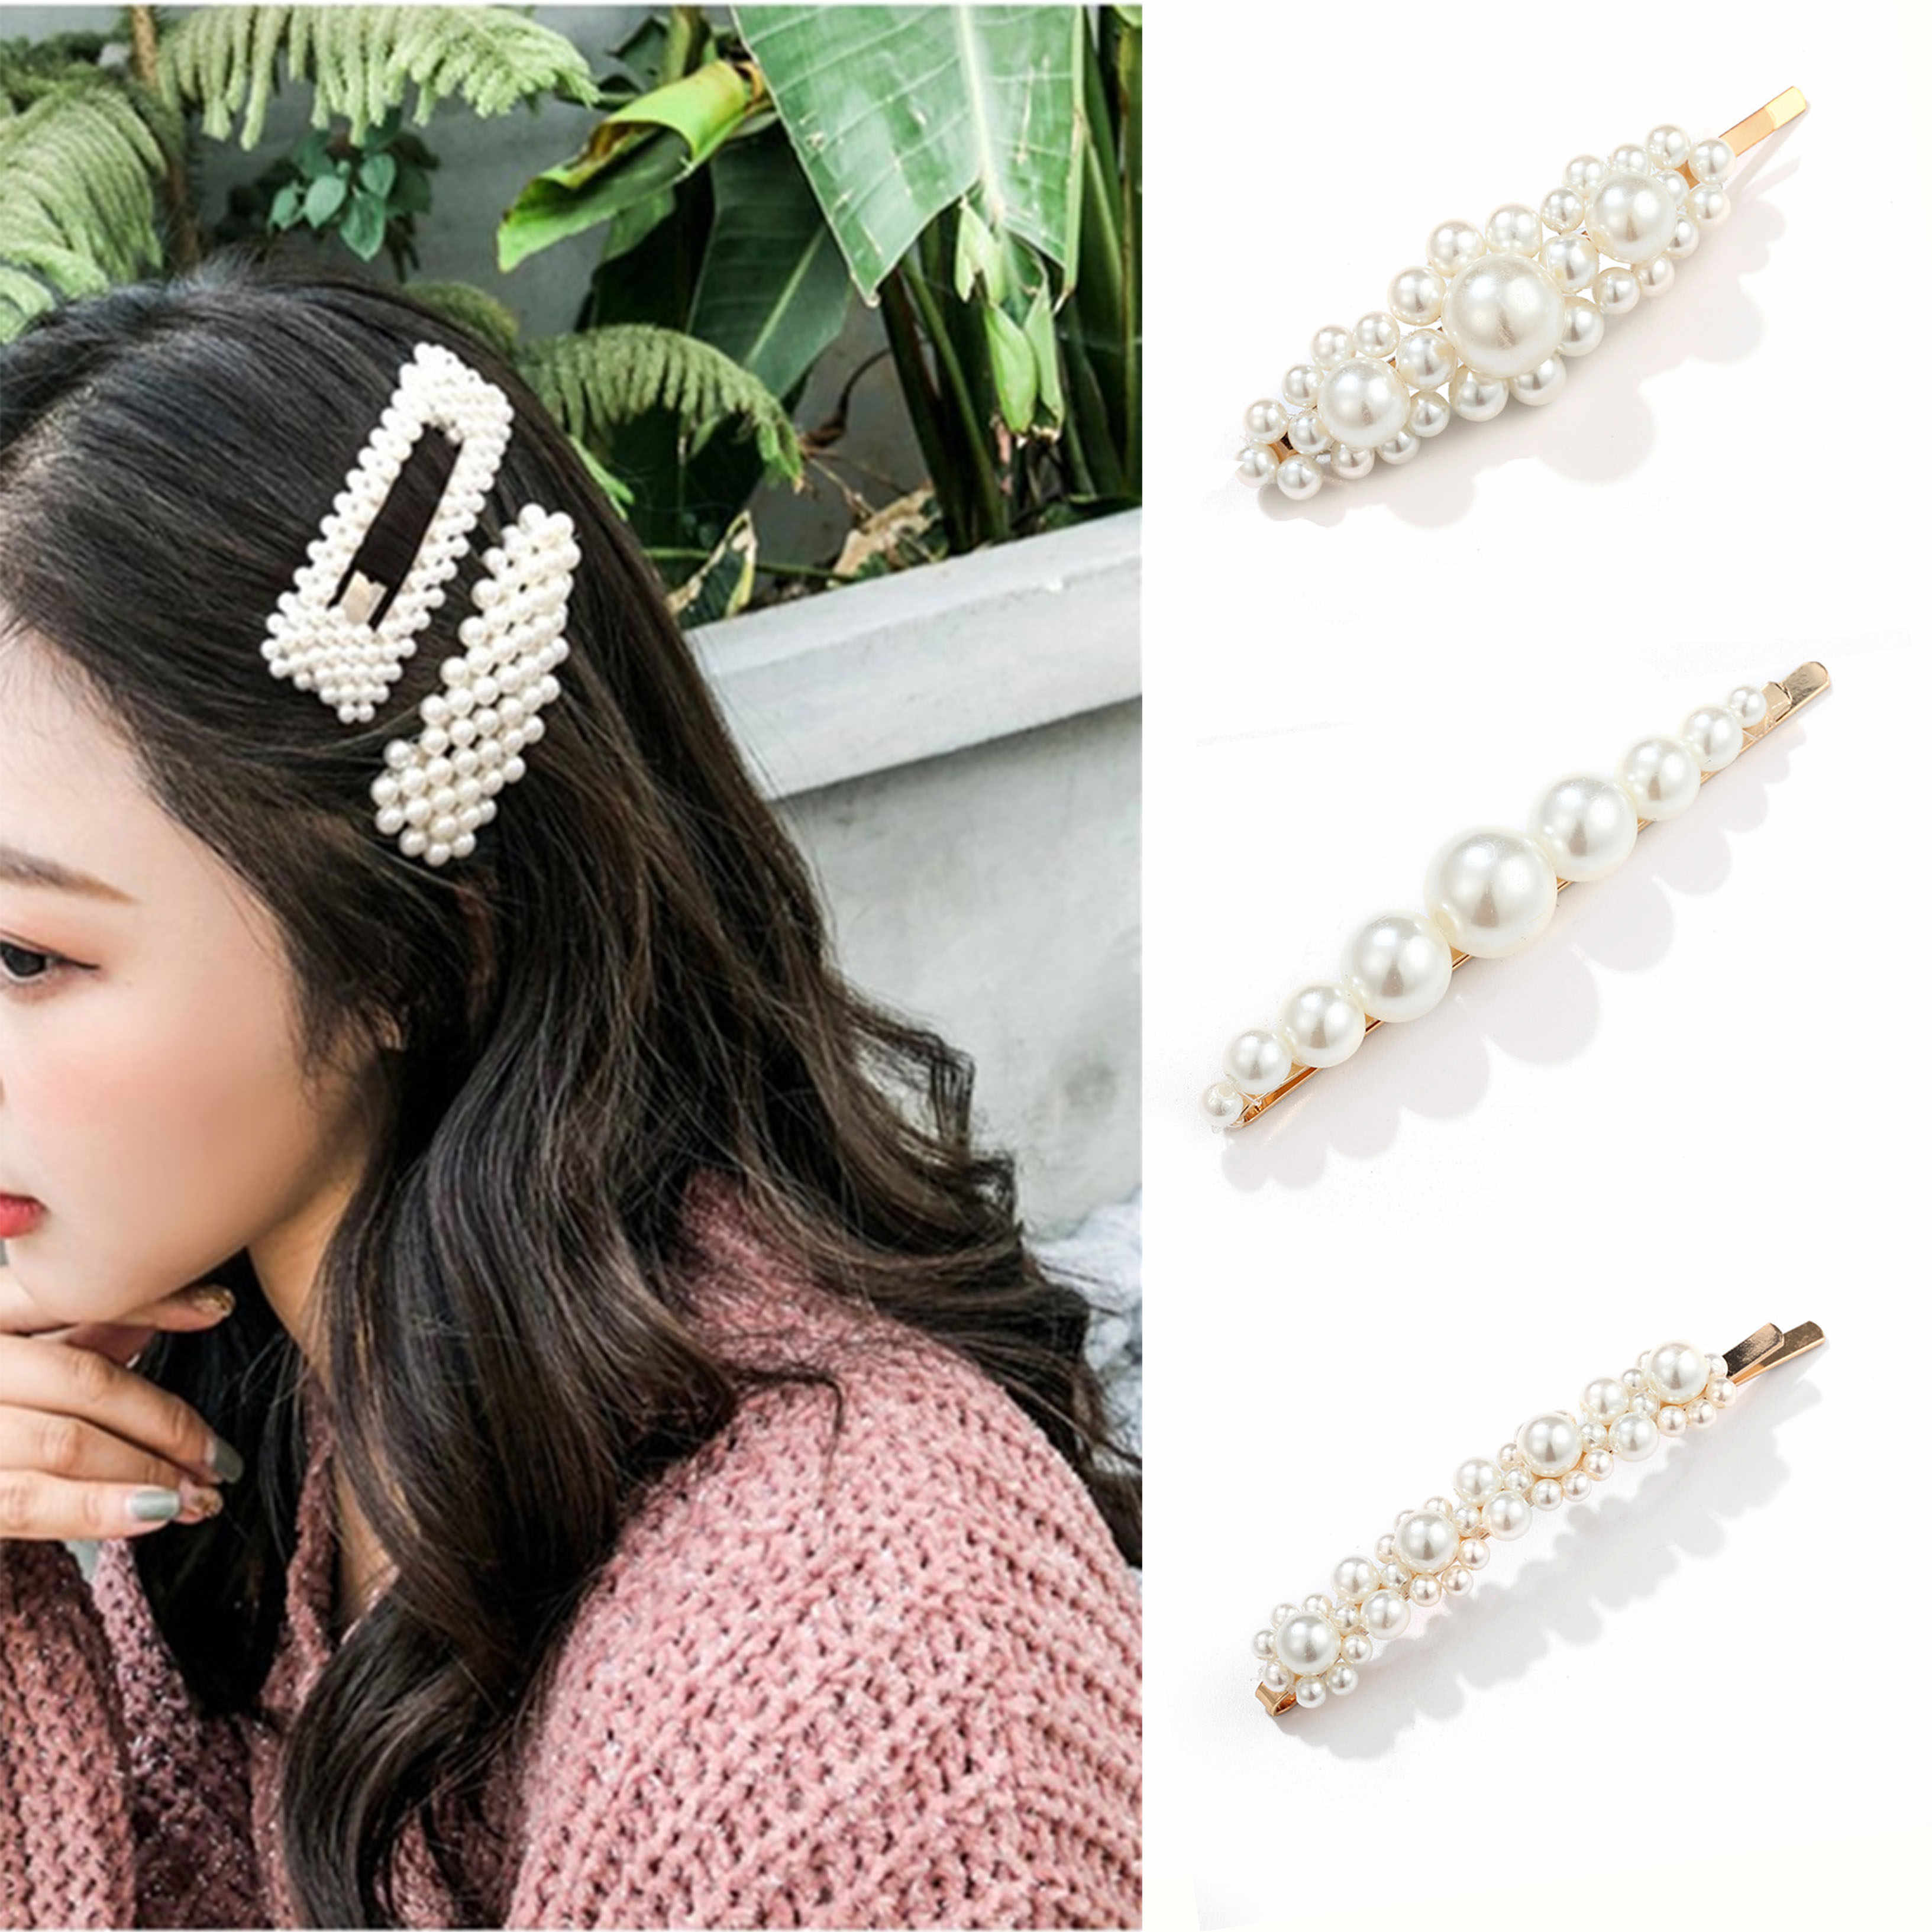 Hot Sale Pearl Beads Hair Clips Set Korean Girl Hair Bobby Pin Geometric Handmade Headwear Accessories For Women Ladies